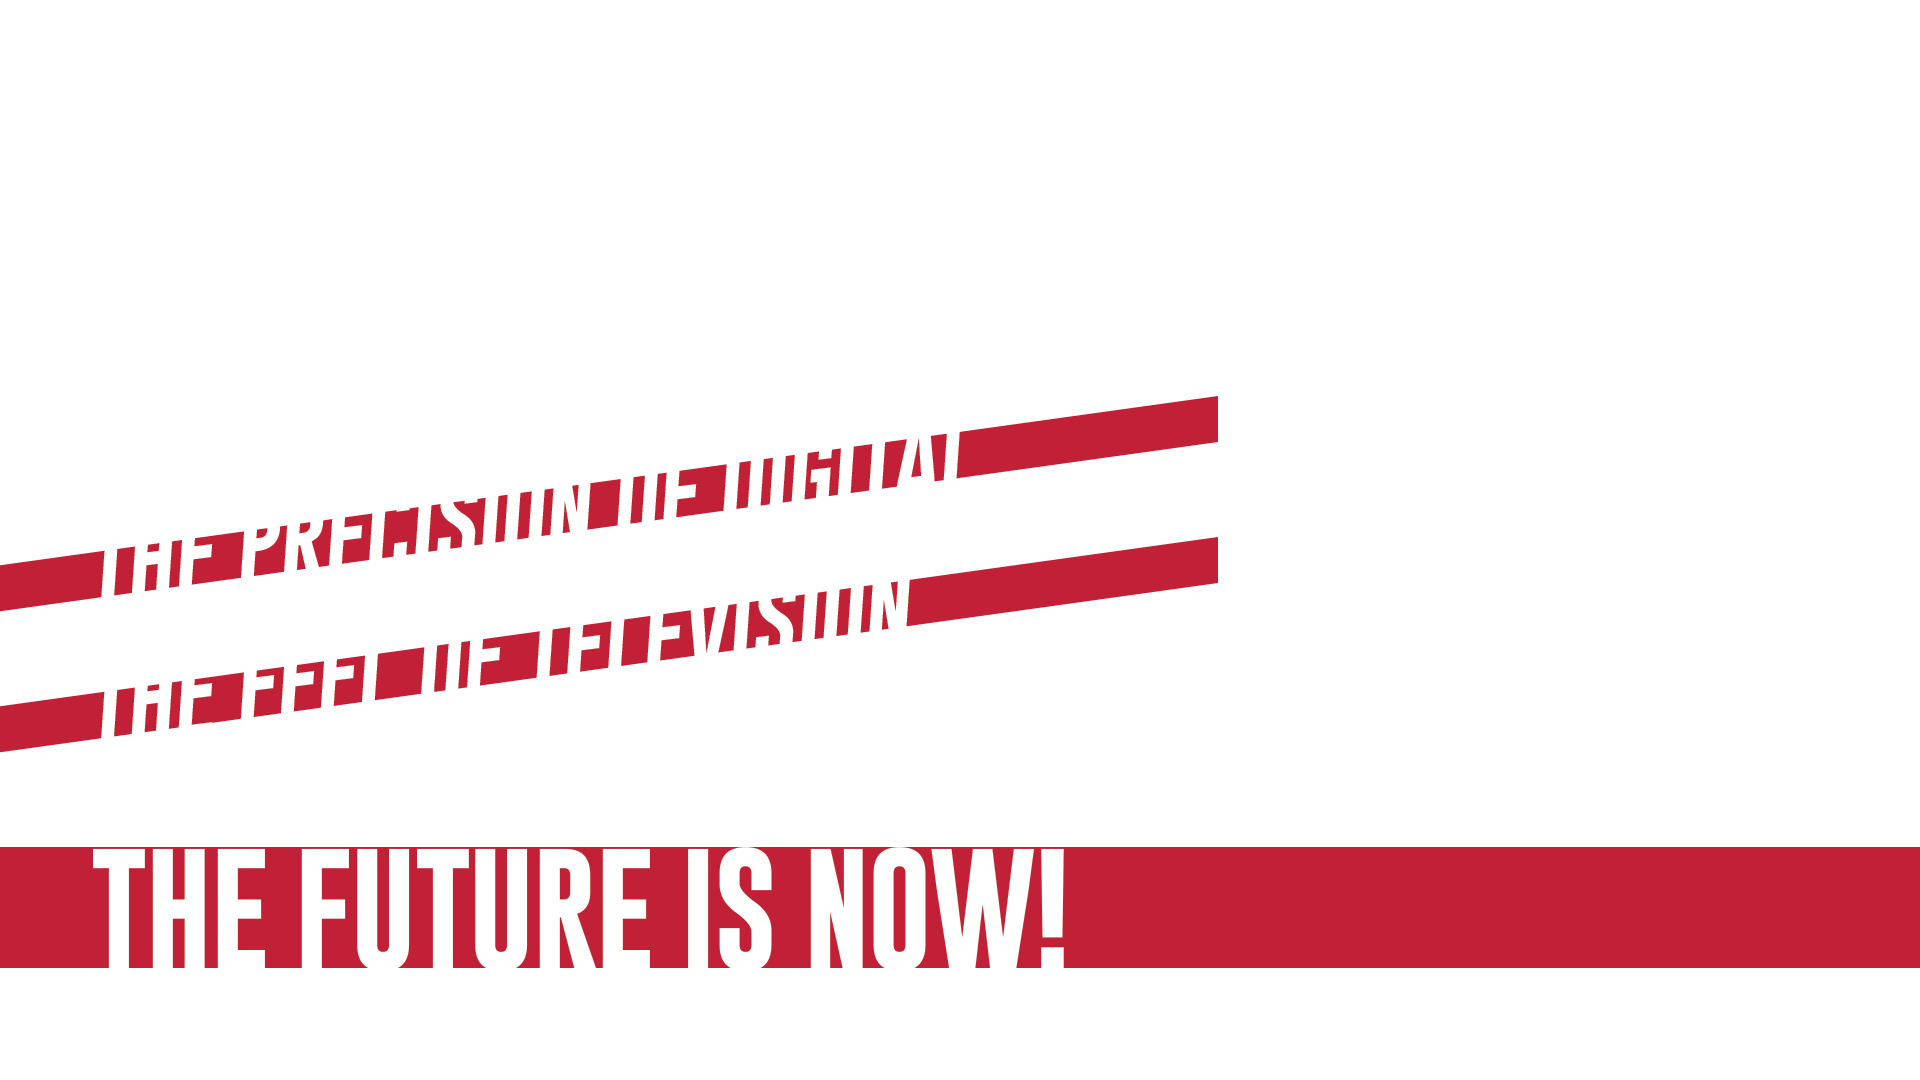 connected tv advertising - the precision of digital with the feel of television. the future is now!